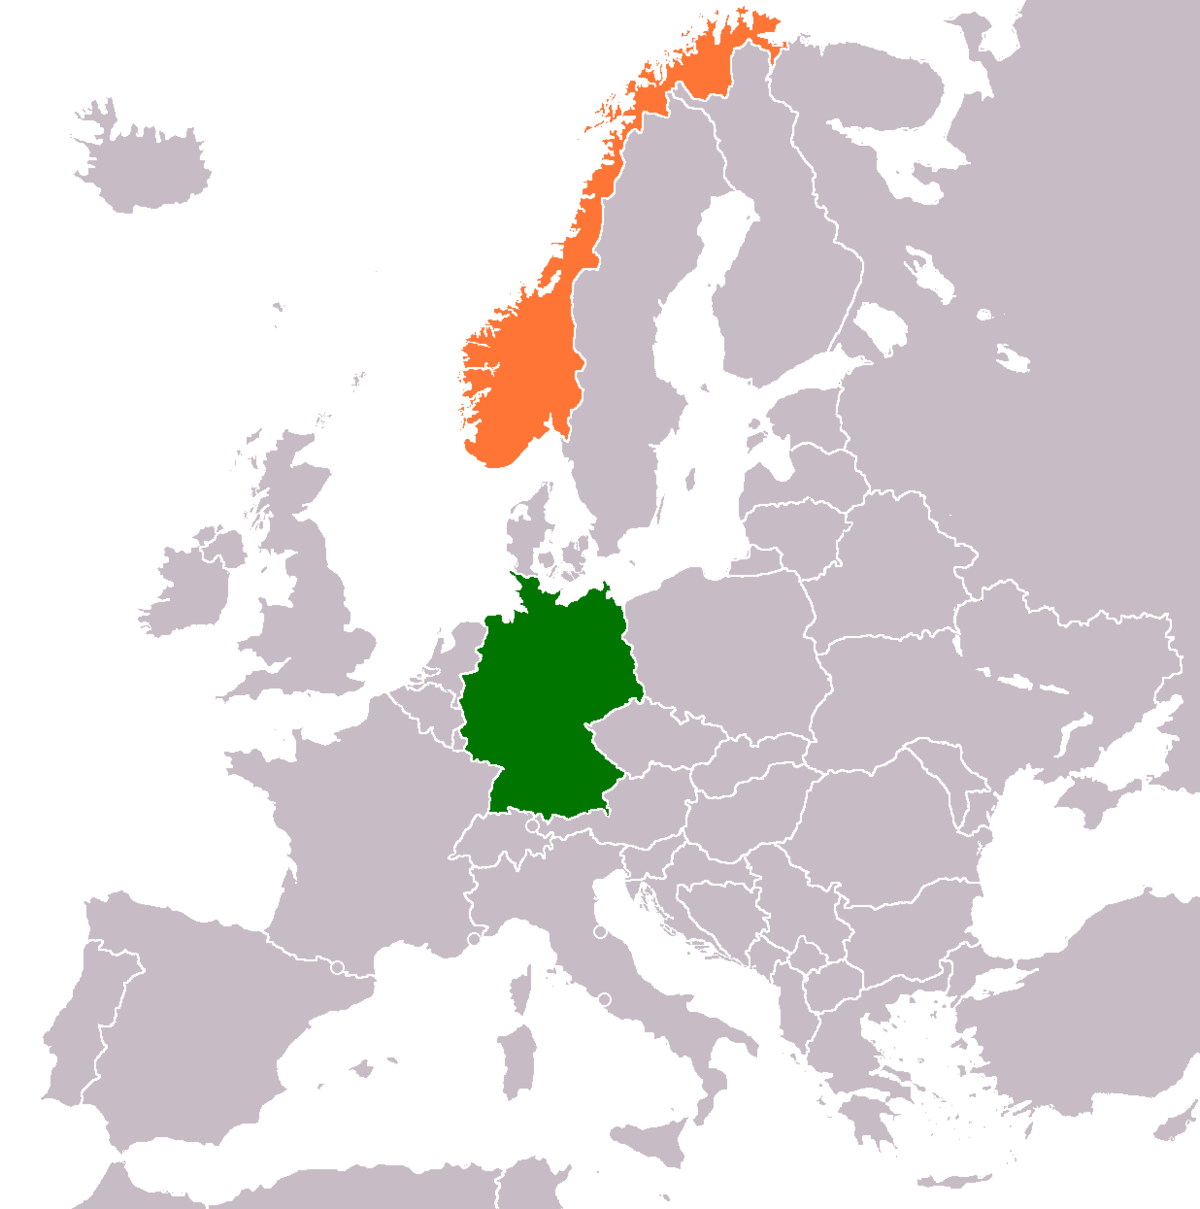 GermanyNorway Relations Wikipedia - Norway map world